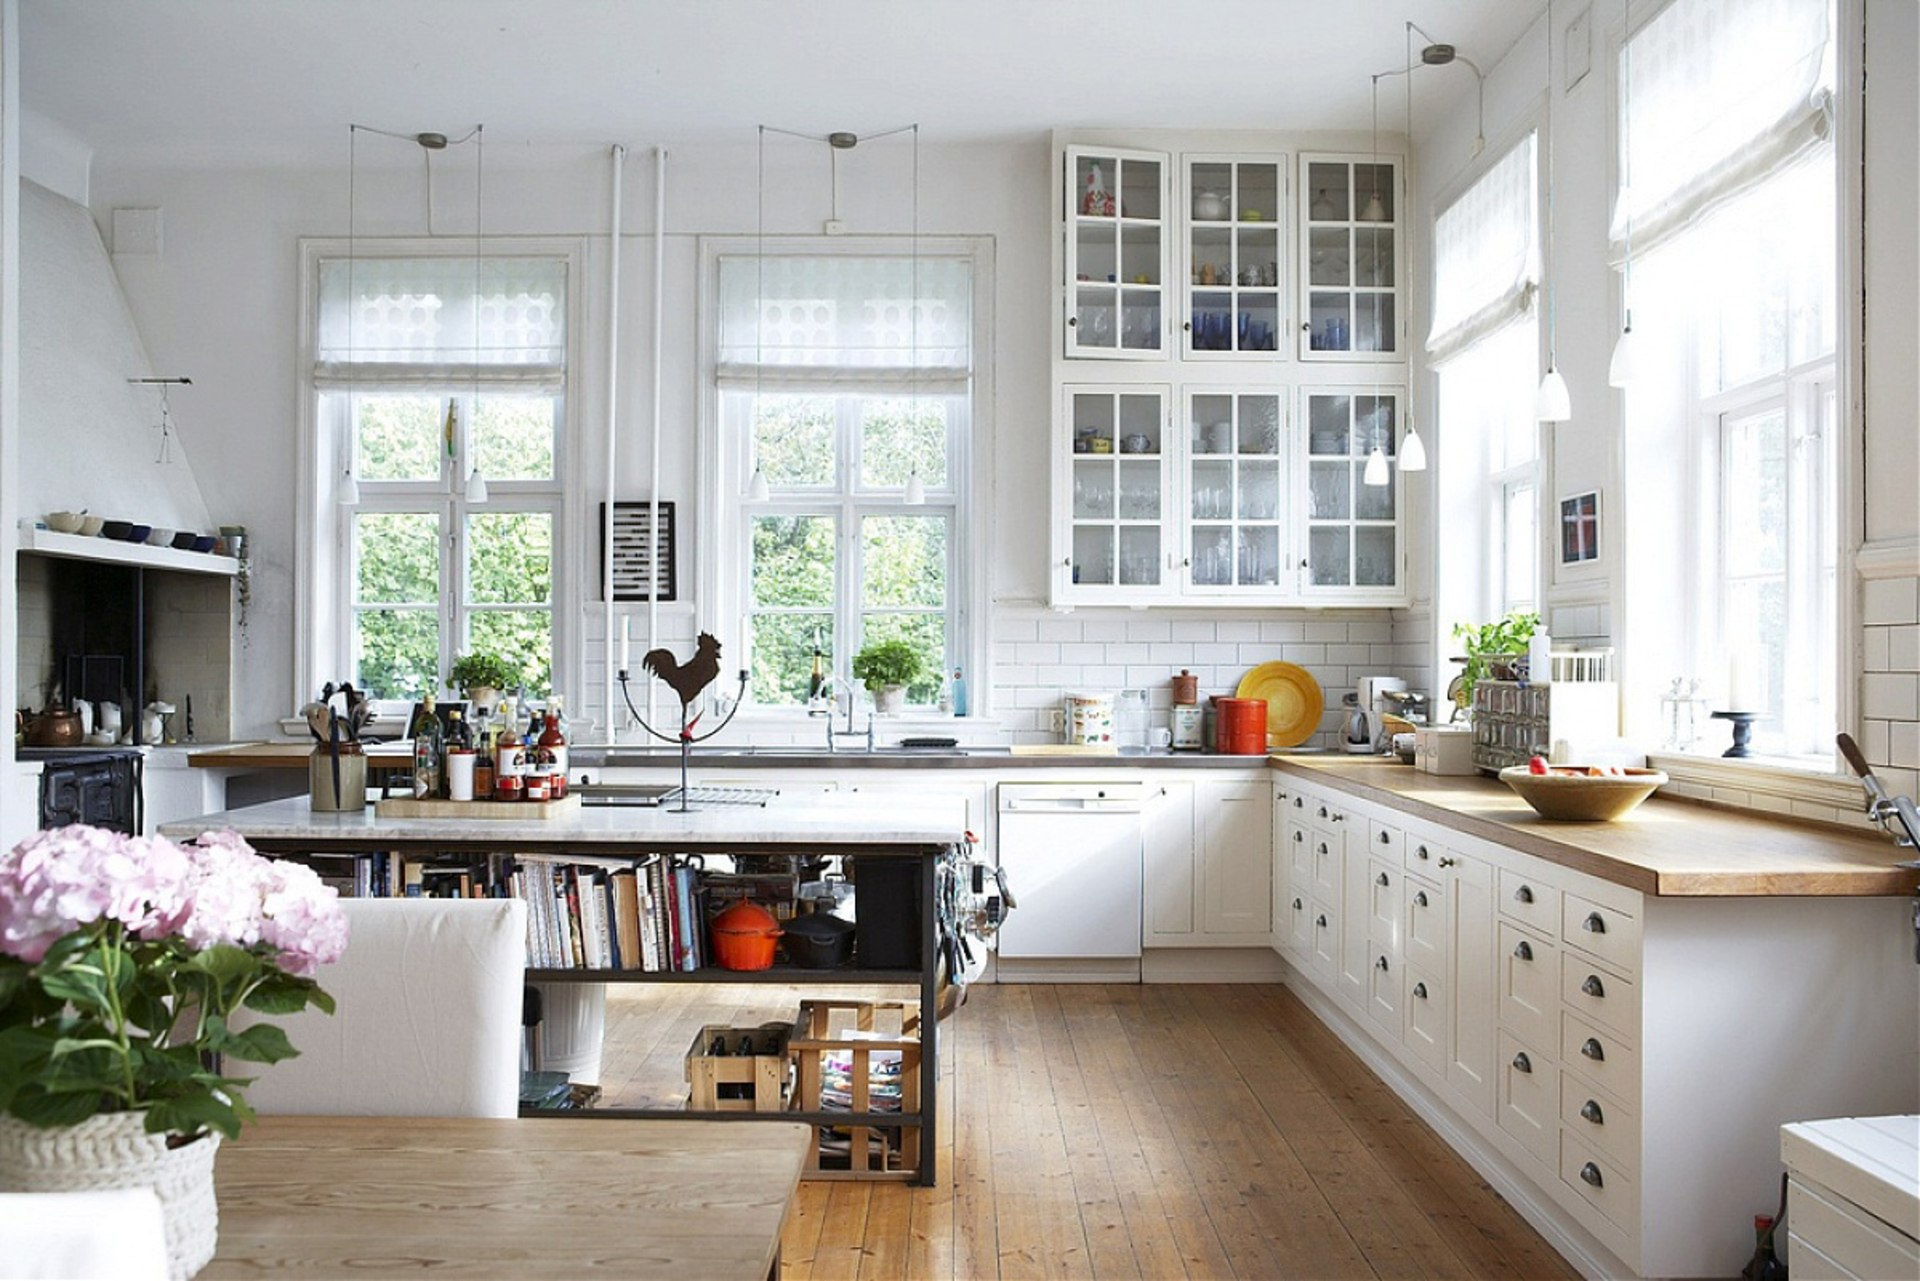 How to Materialize The Kitchen of Your Dreams Today homesthetics kitchen decor (2)